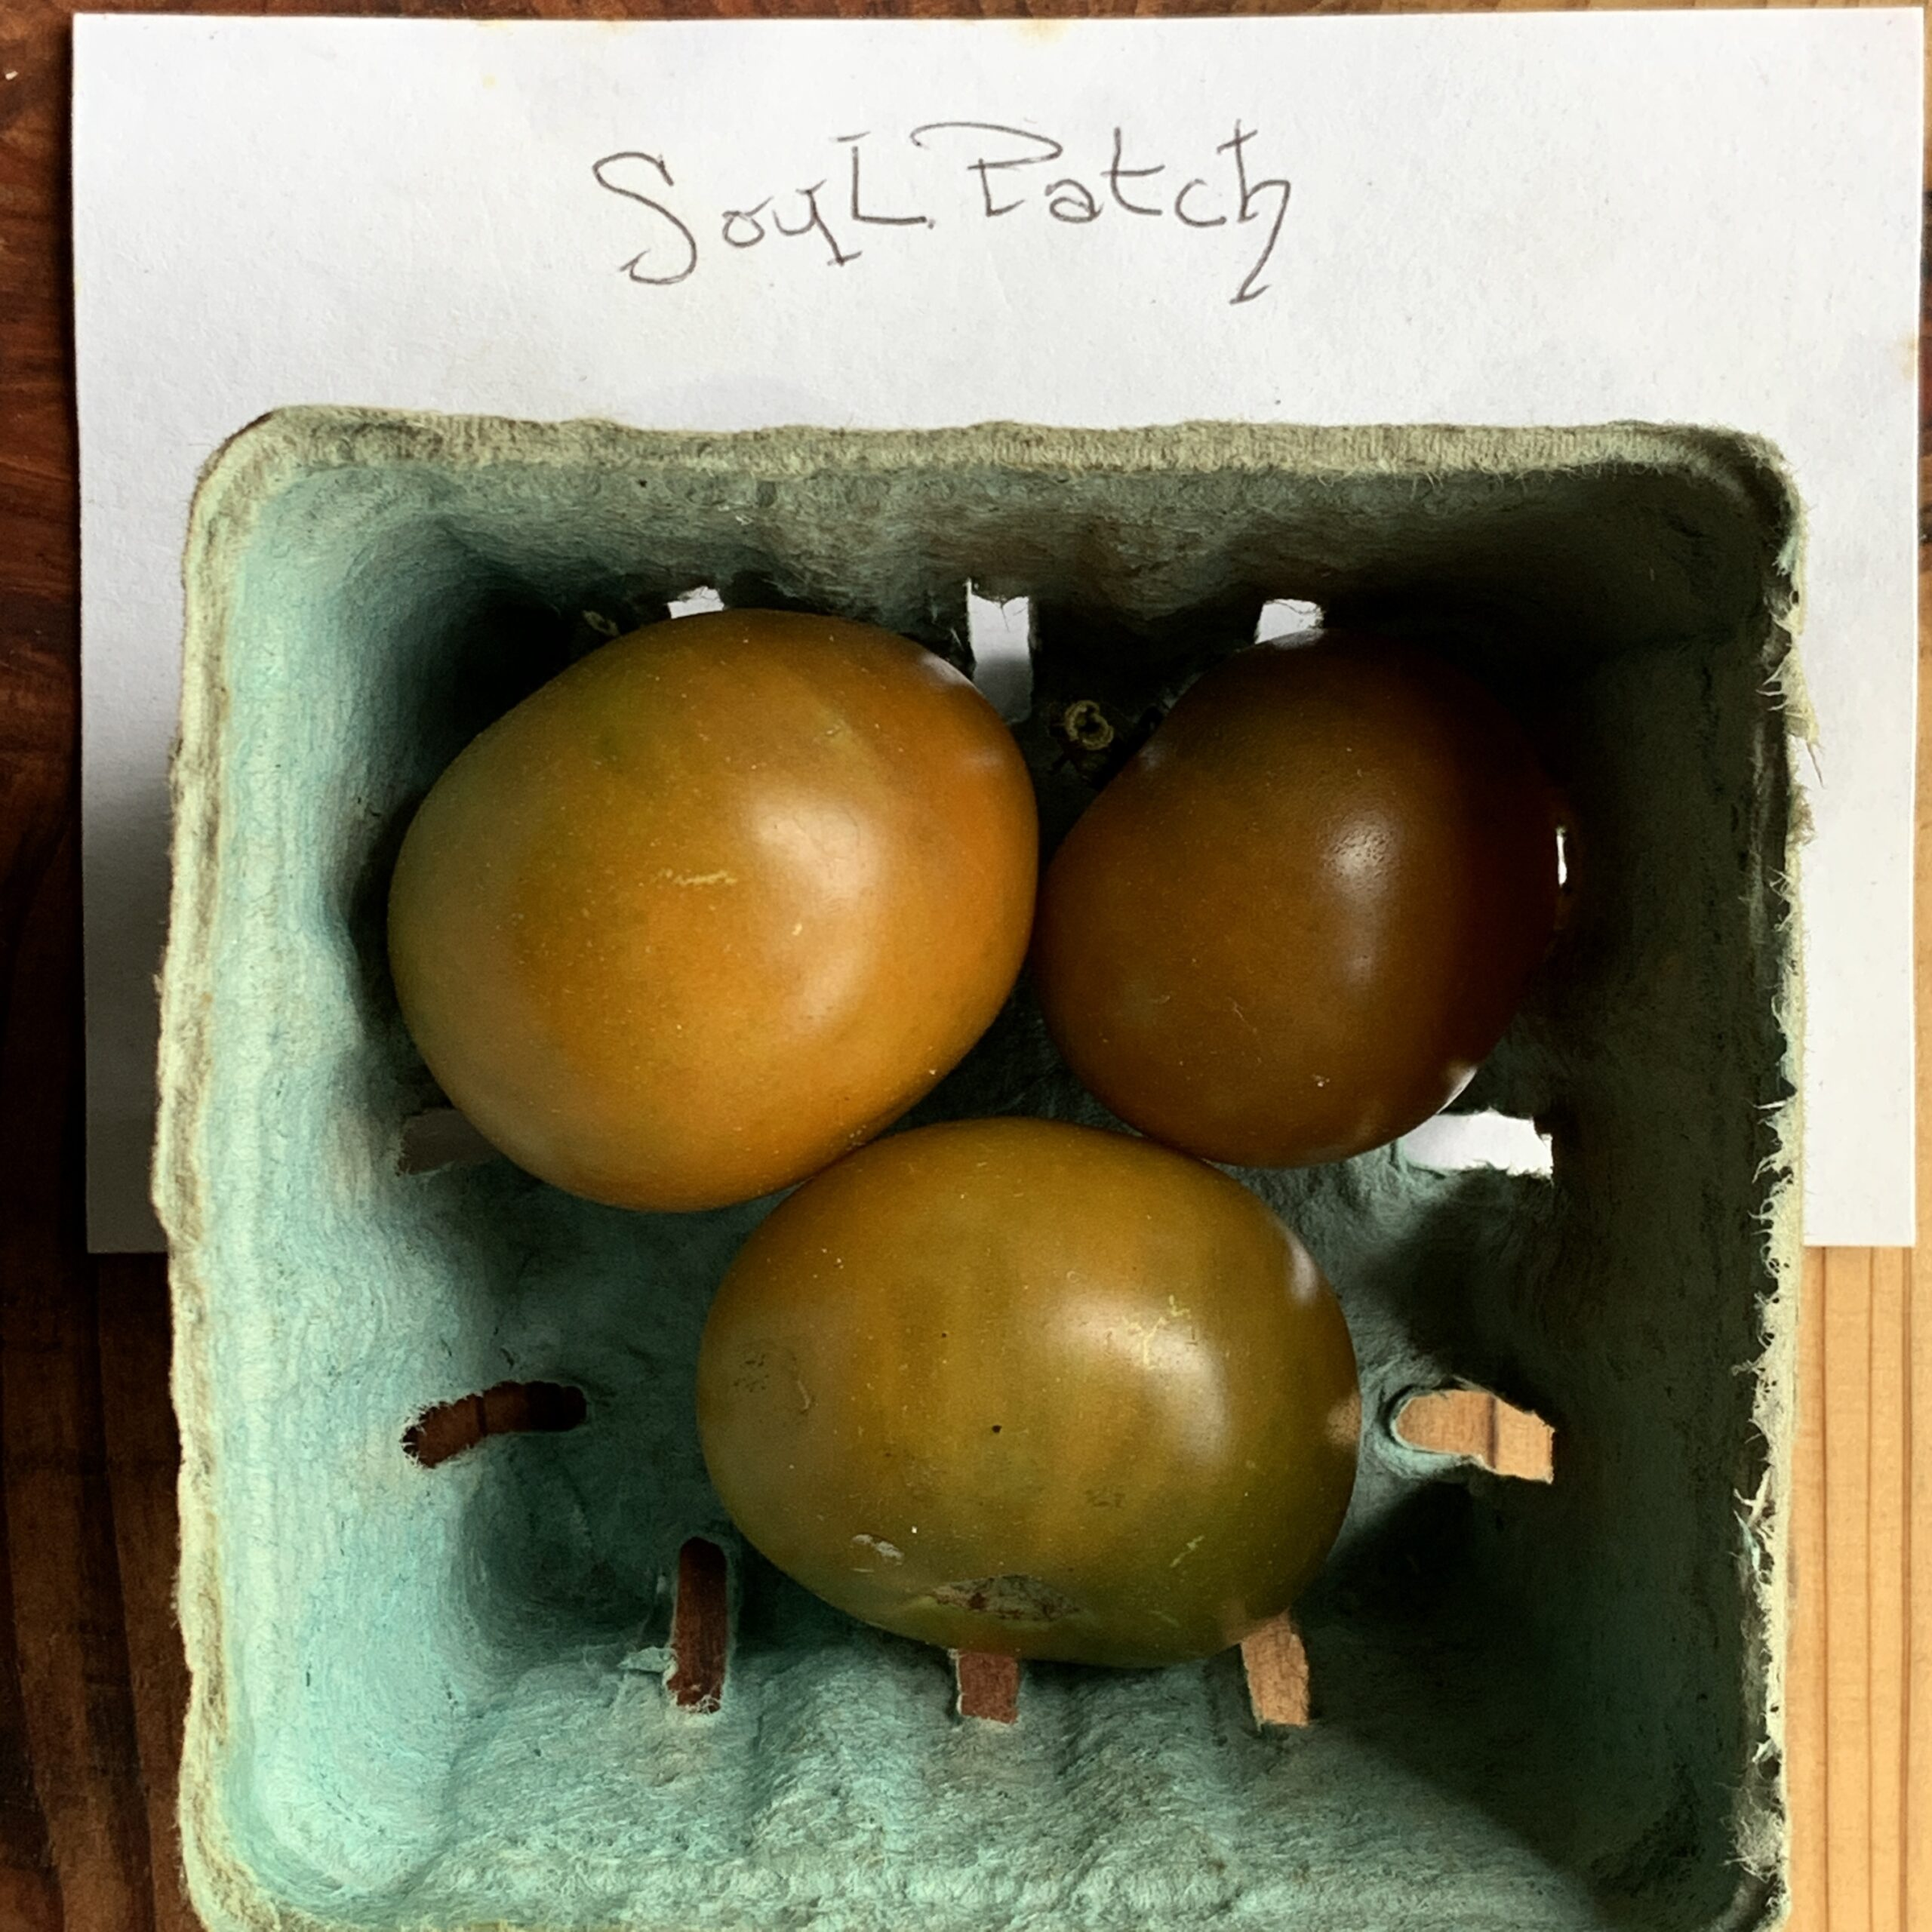 Image of Soul Patch tomatoes